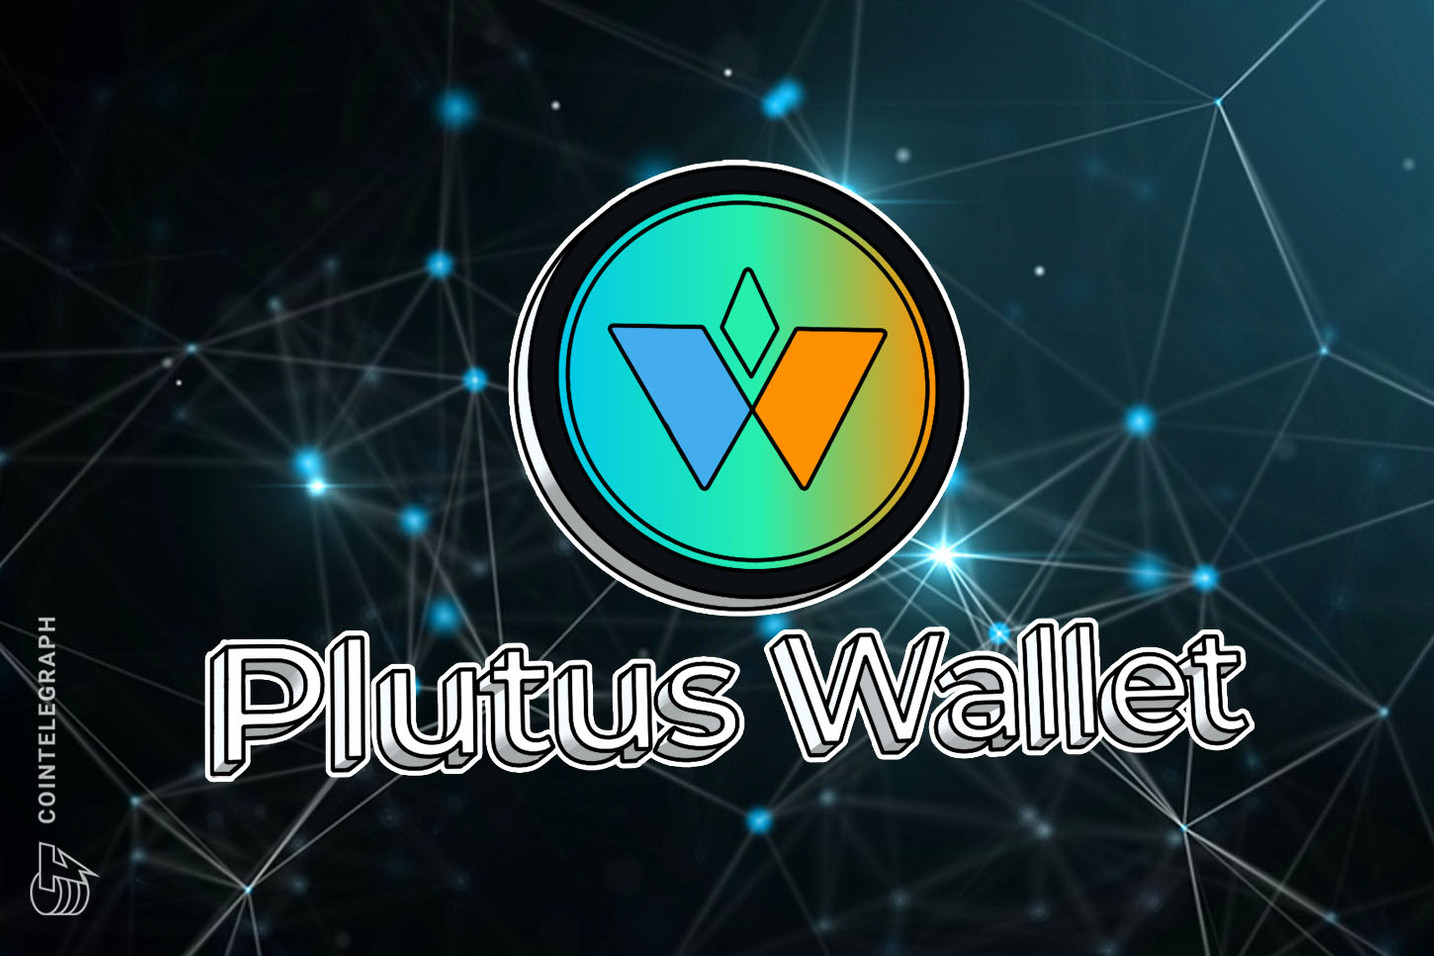 Meet Plutus Wallet: Your Personal Crypto Portfolio Simulator for Android